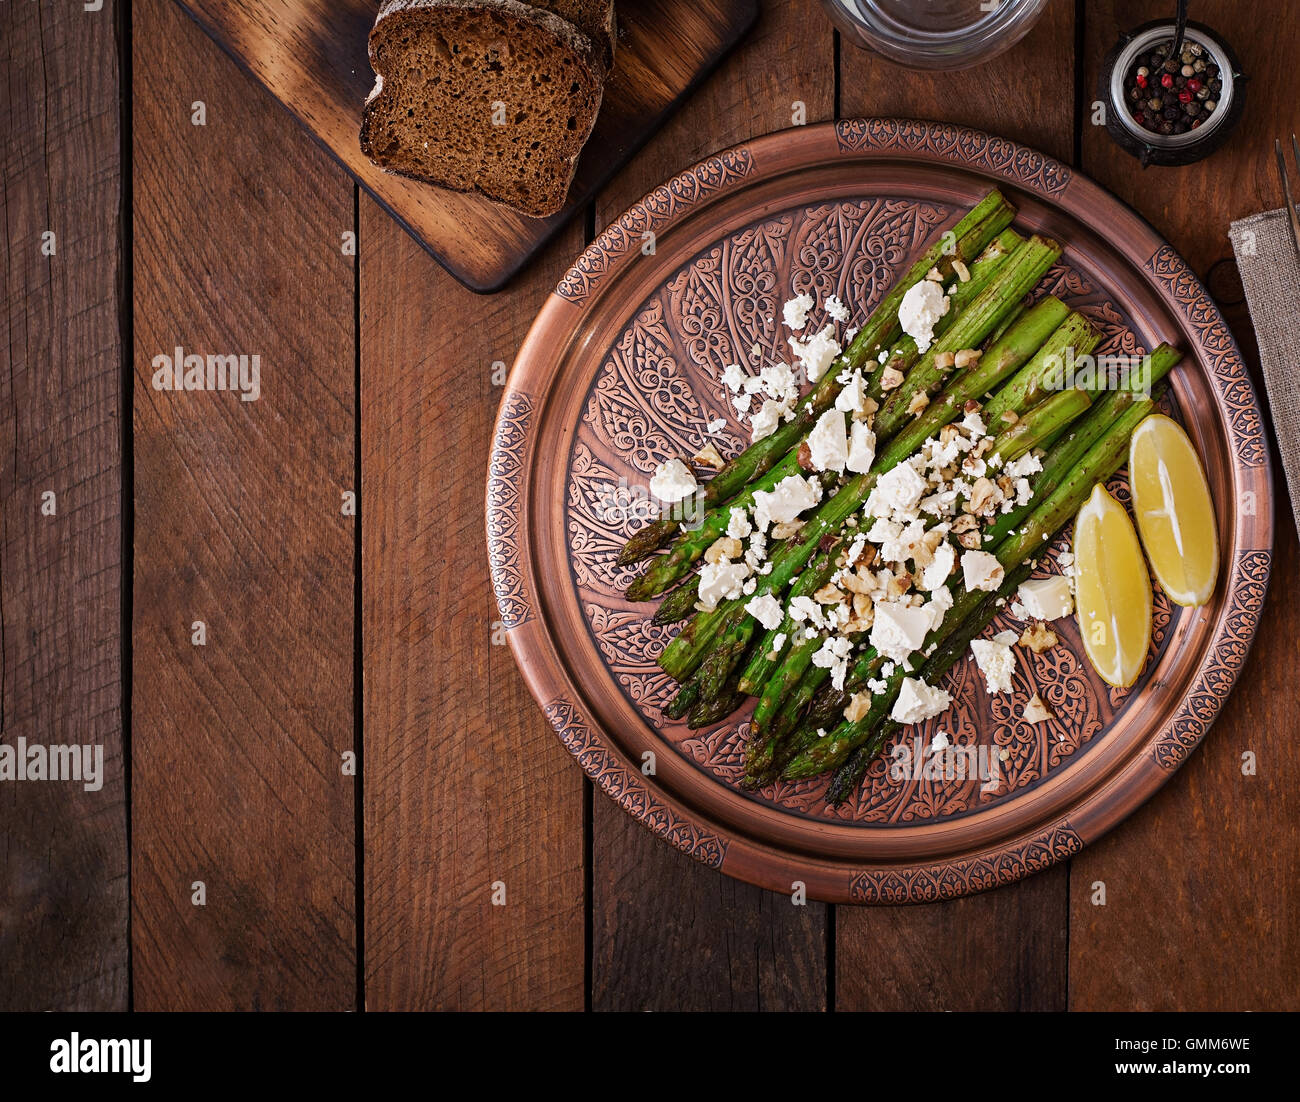 Warm salad of roasted asparagus, feta cheese, nuts, flavored with lemon juice. Top view - Stock Image